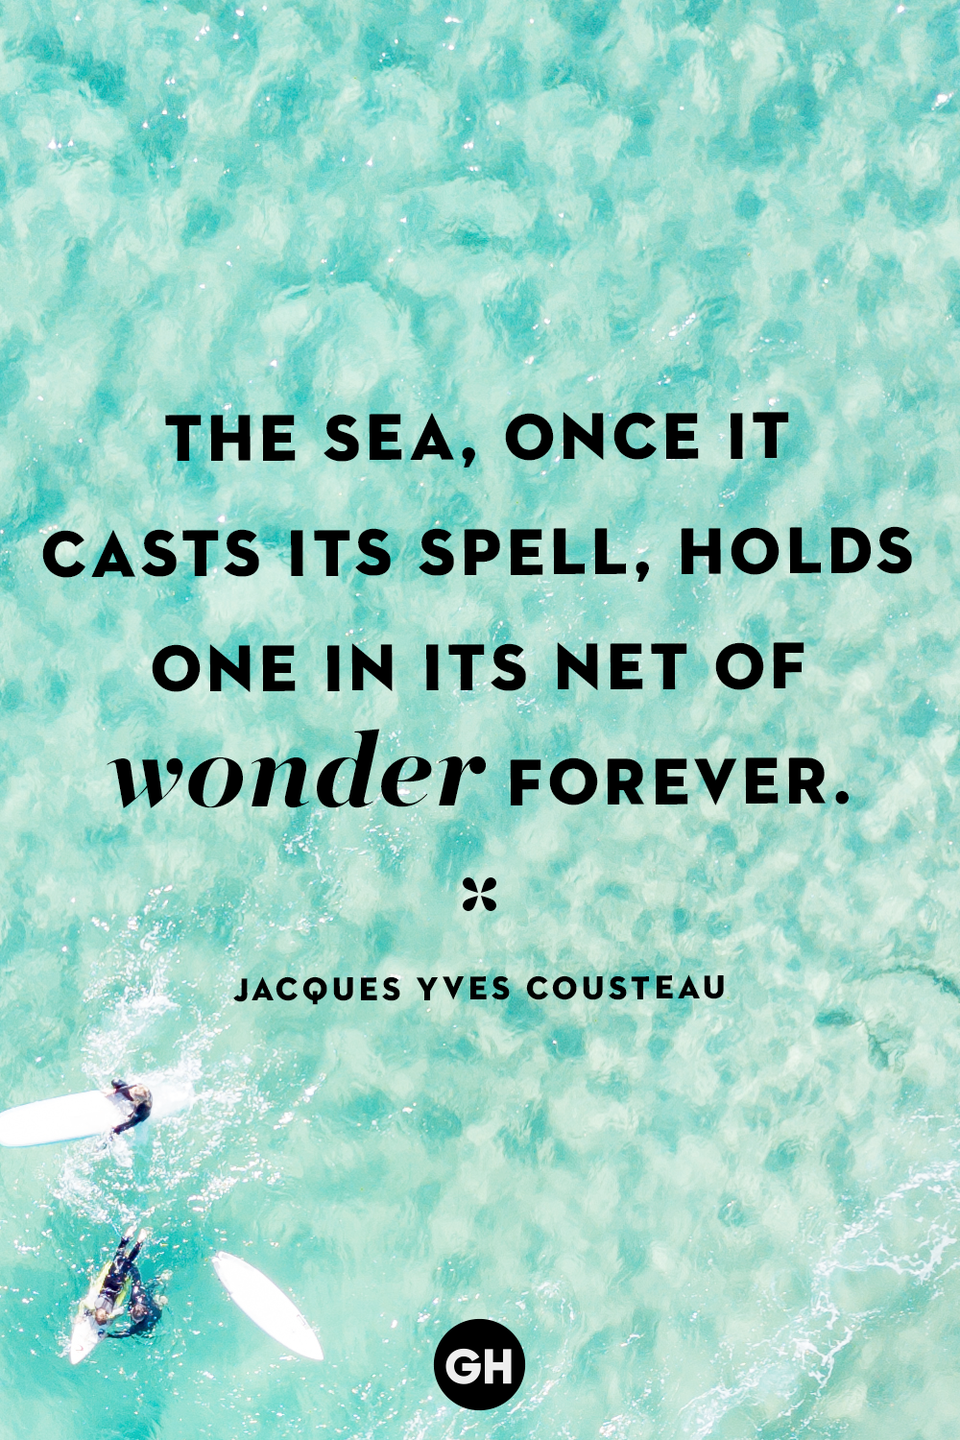 <p>The sea, once it casts its spell, holds one in its net of wonder forever.</p>